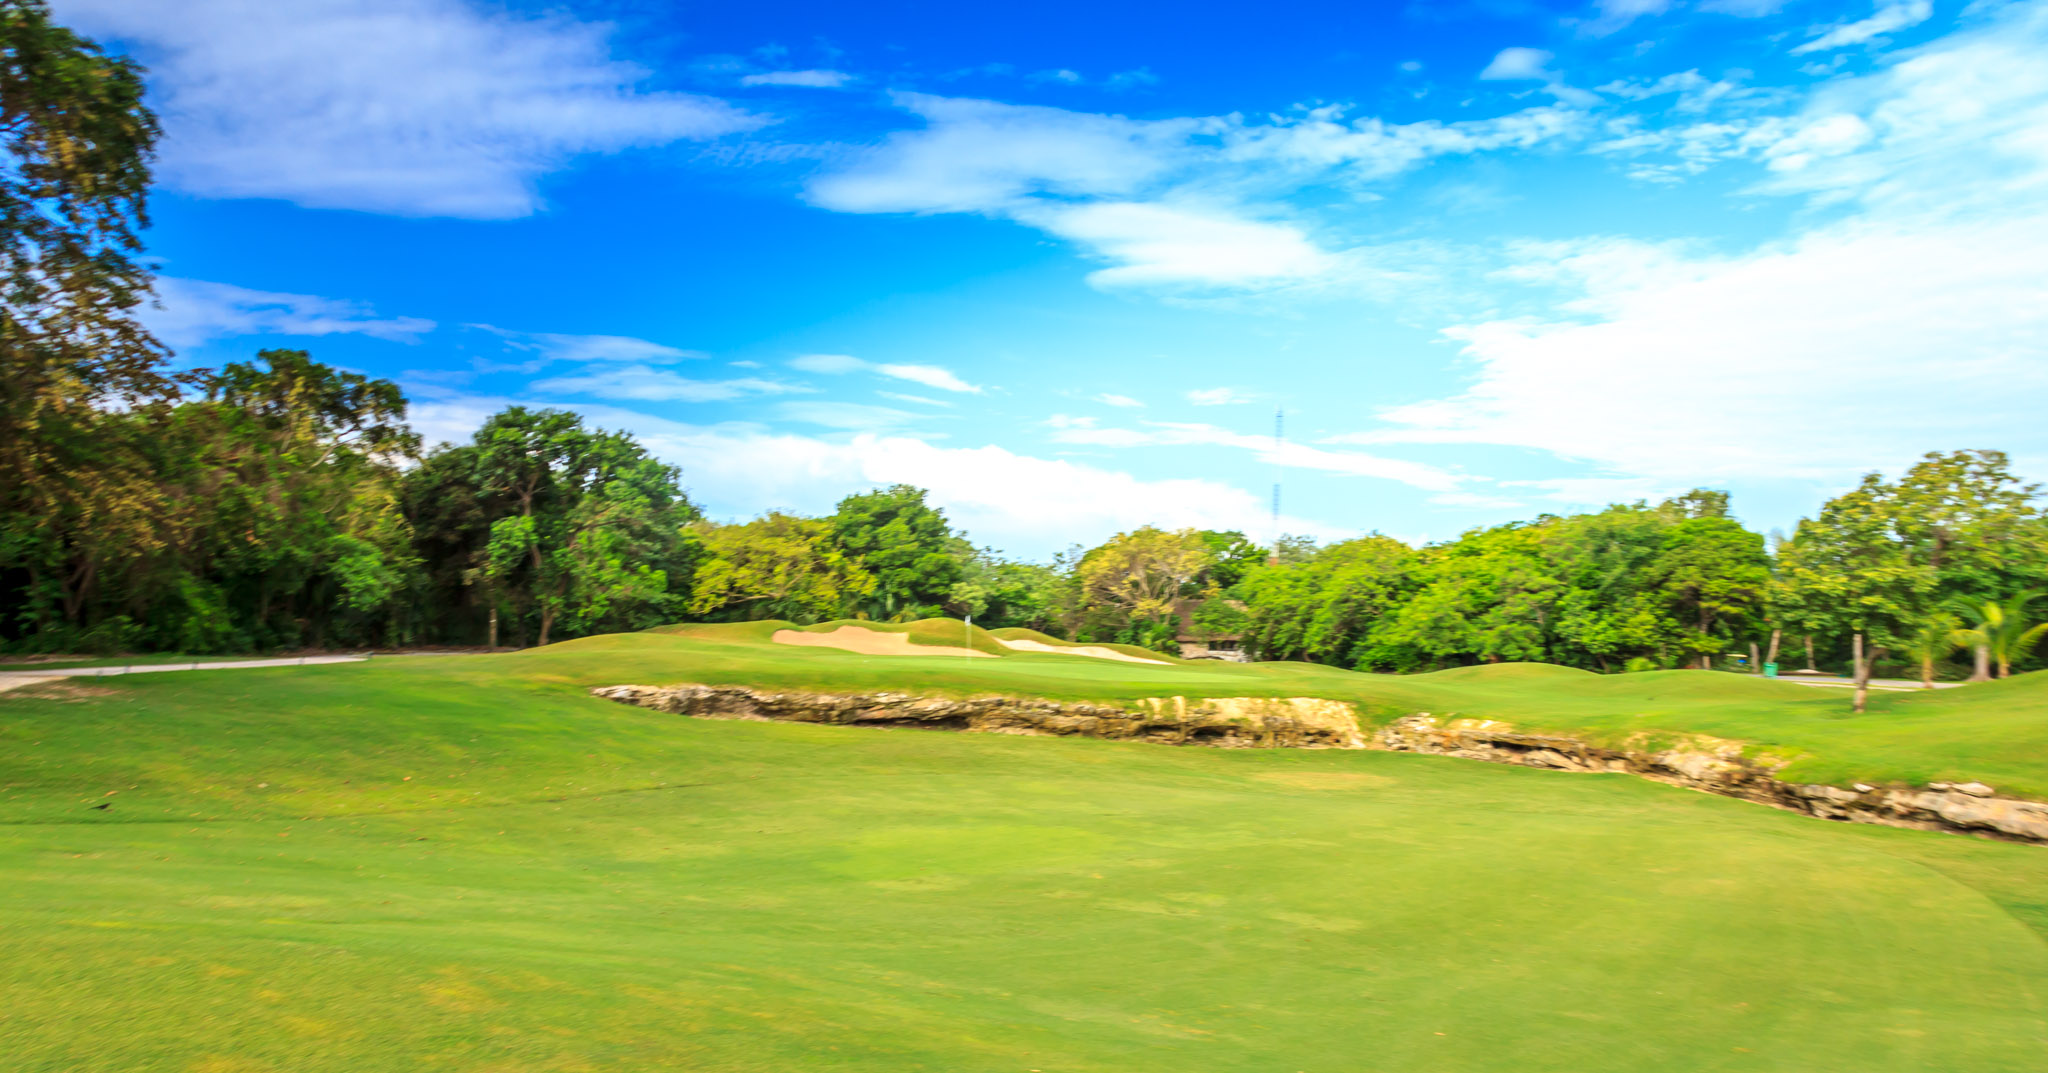 Playacar Golf Club 2014-3.jpg